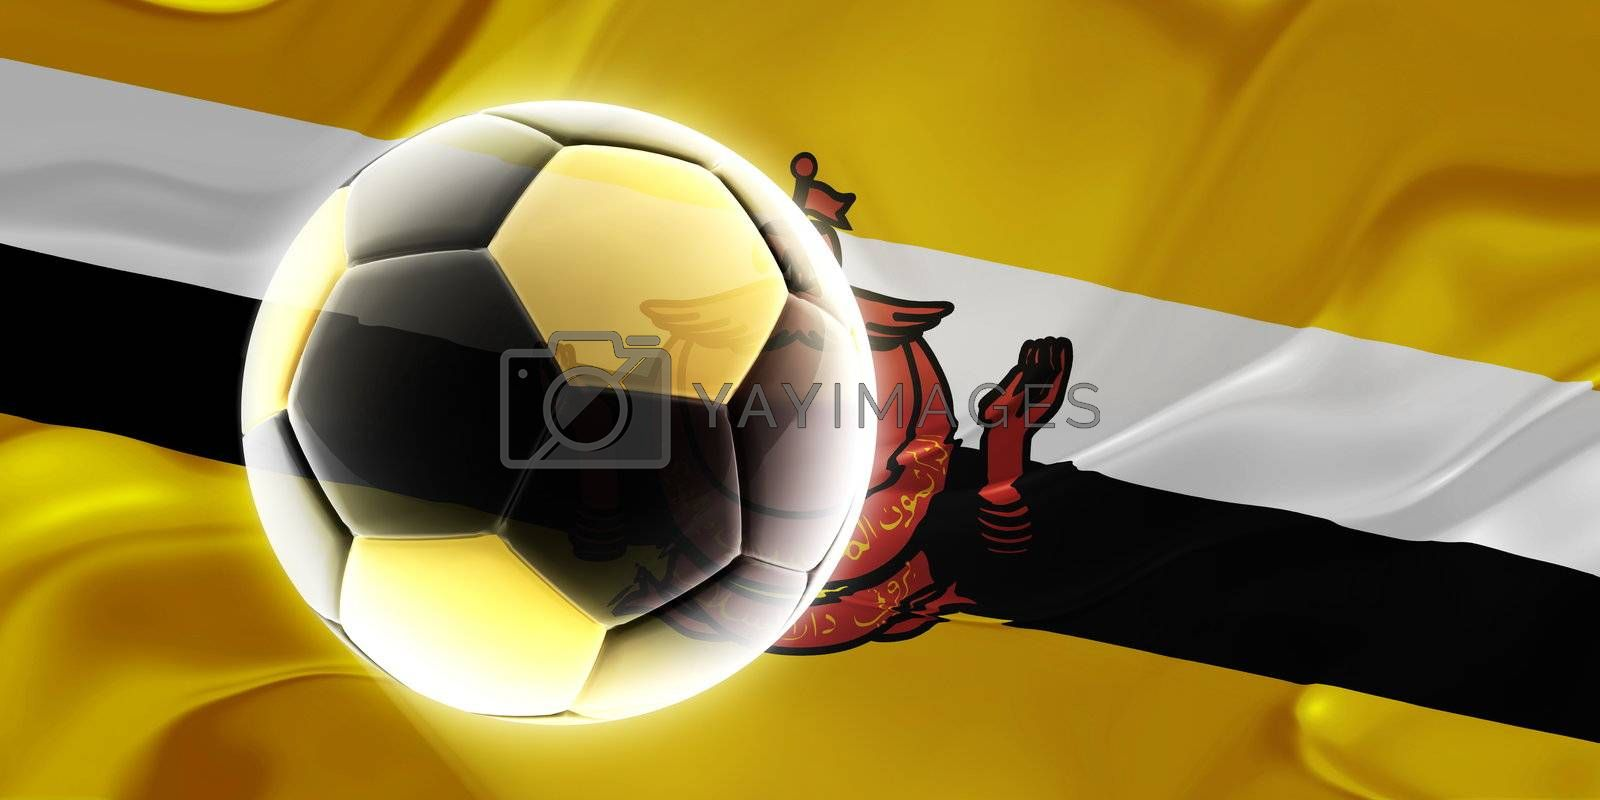 Royalty free image of Brunei flag wavy soccer by kgtoh